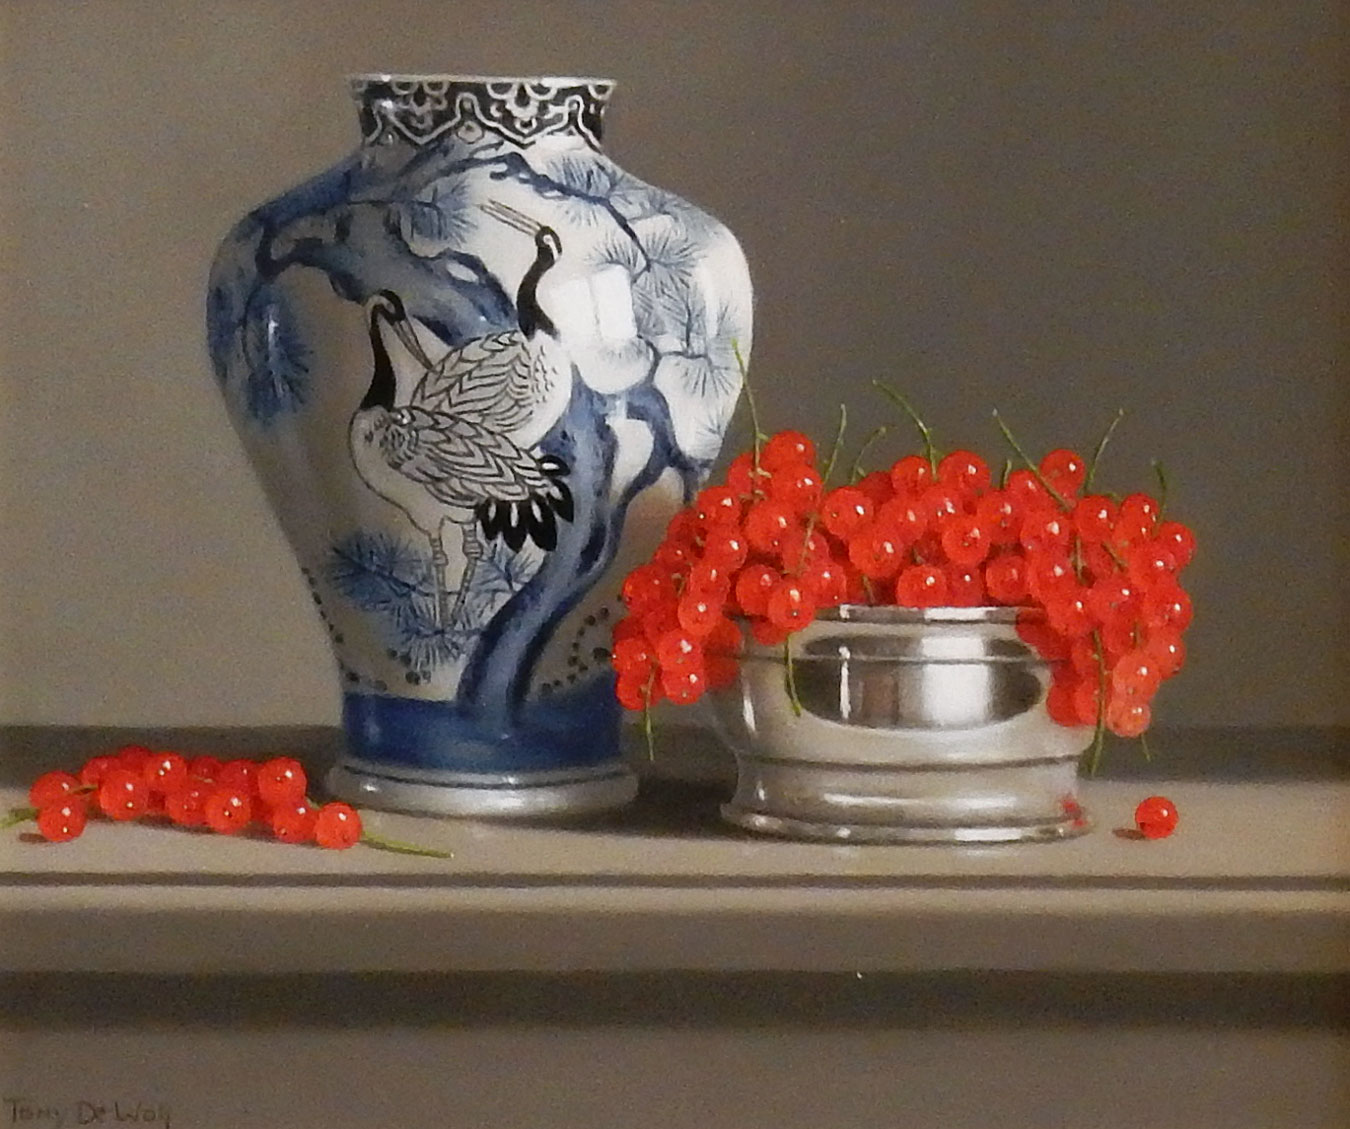 Chinese Vase and Red Currants by  Tony de Wolf